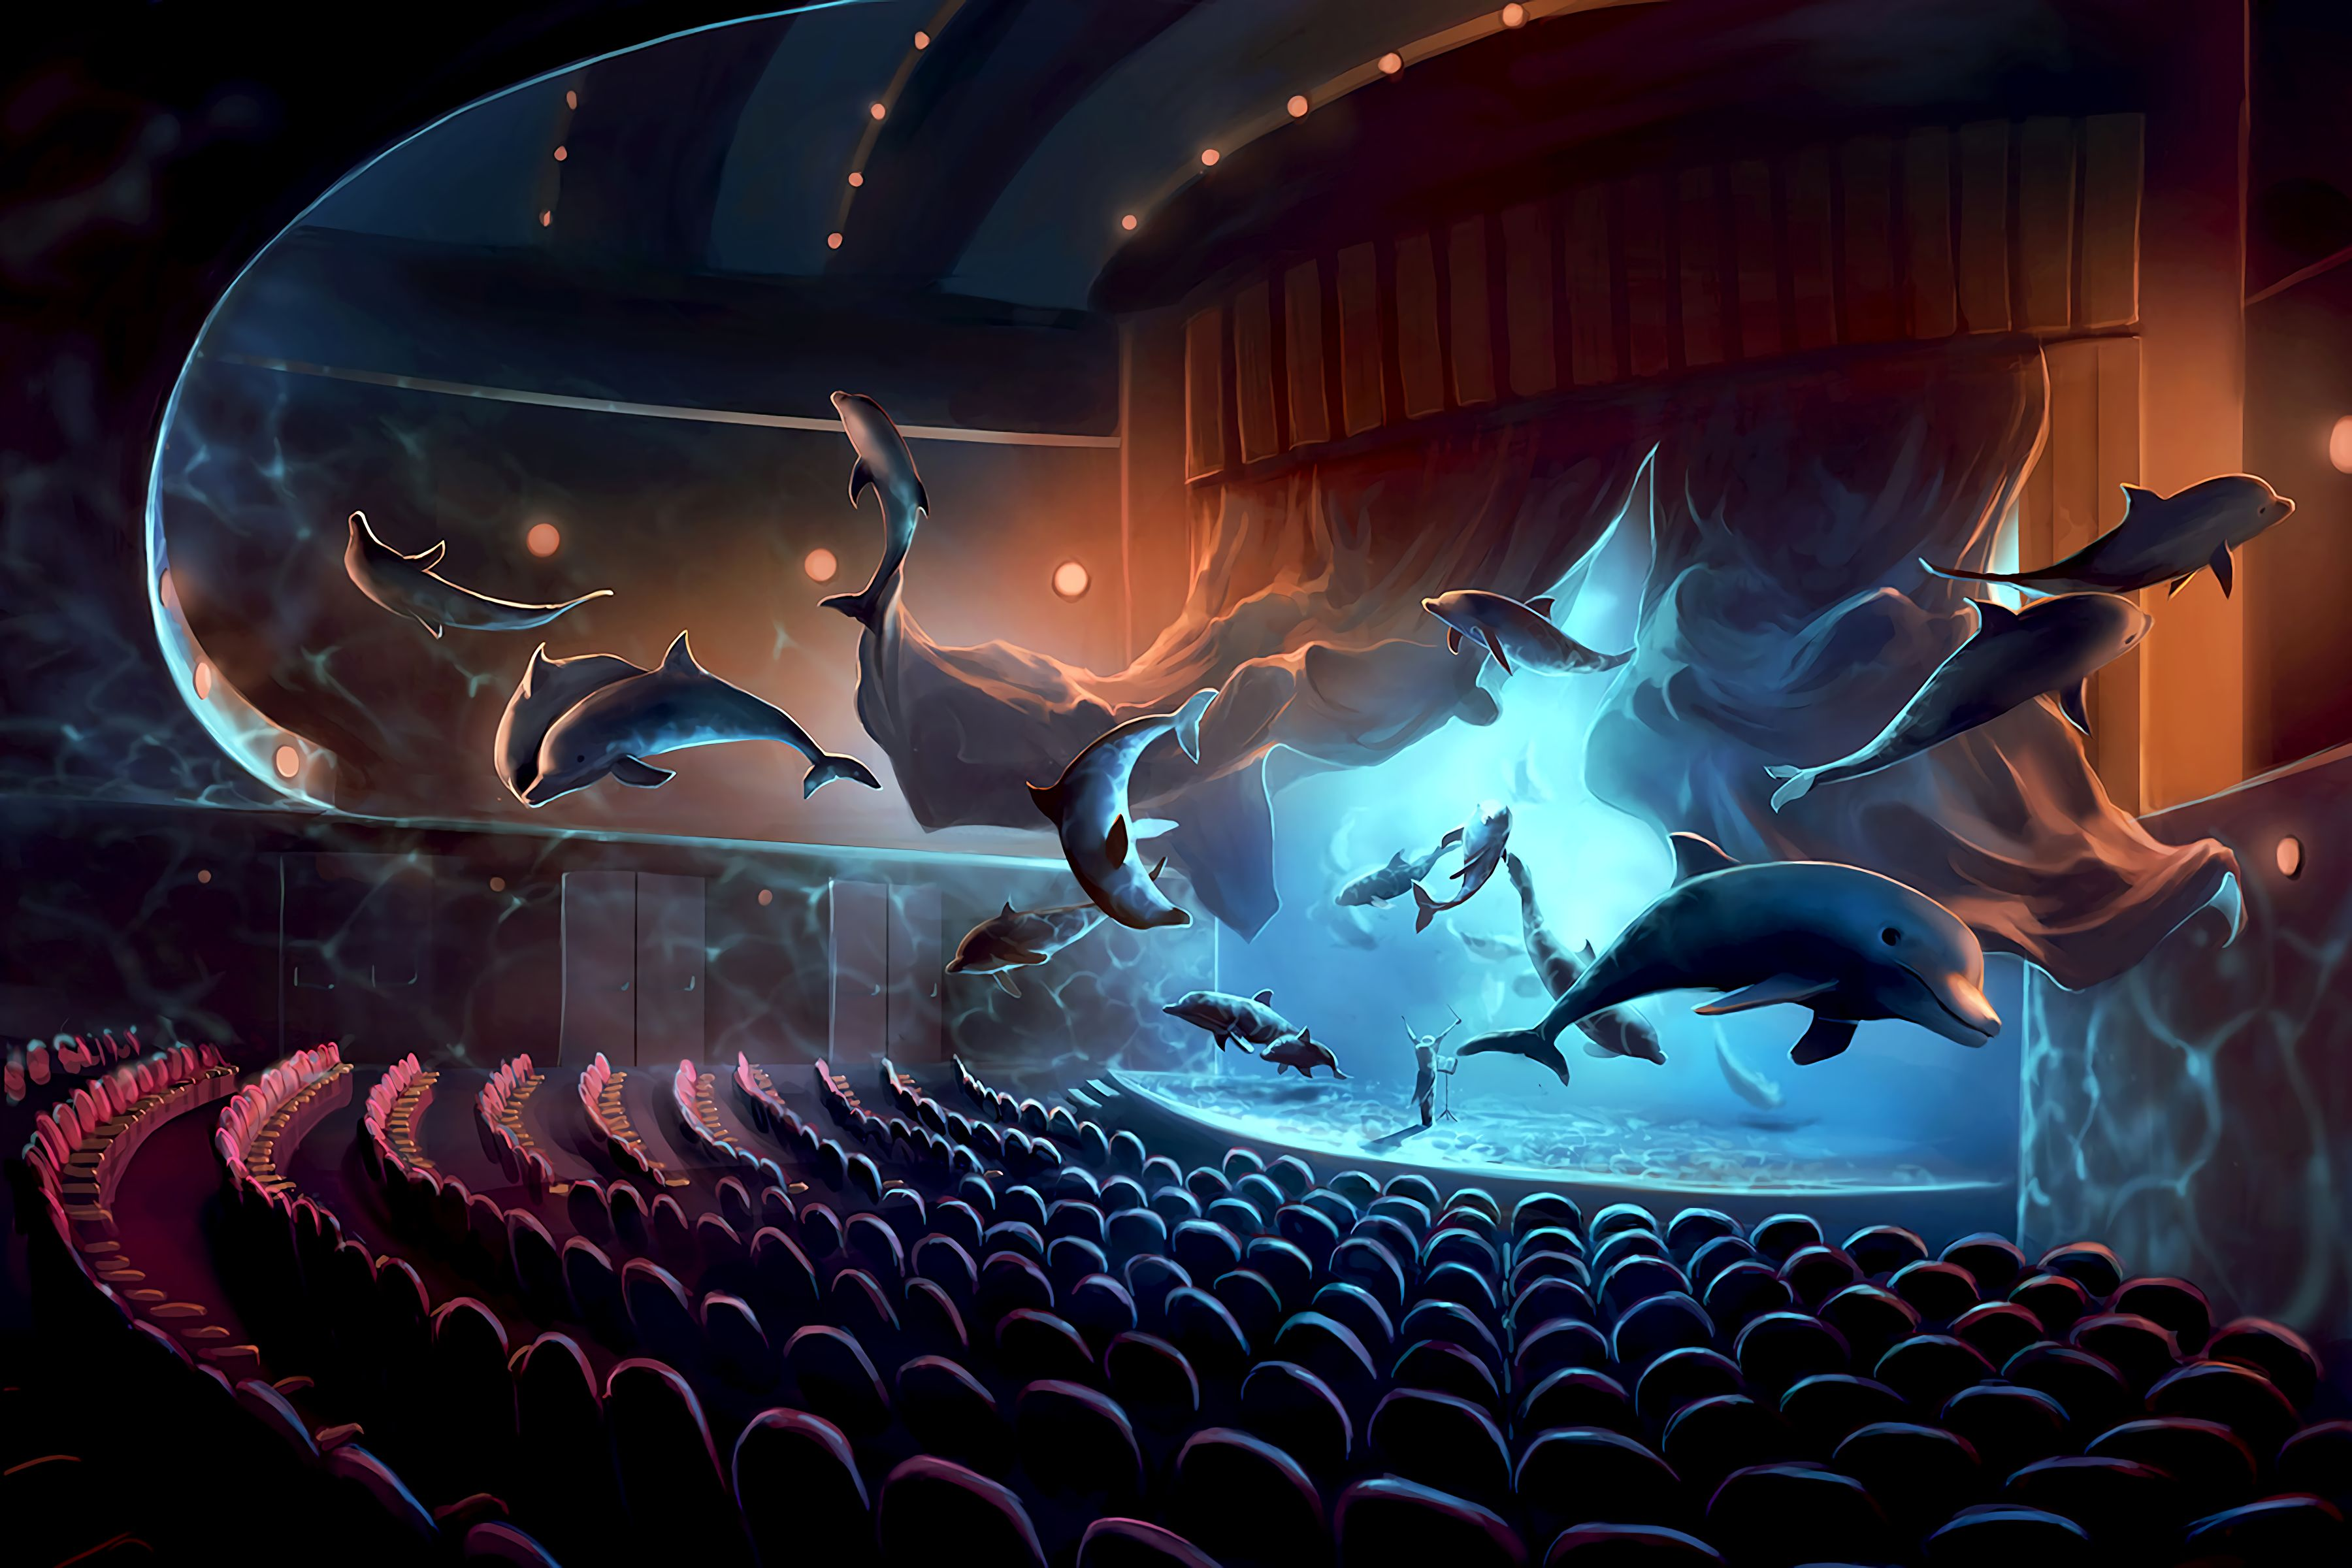 53843 download wallpaper Art, Dolfins, Musician, Concert, Surrealism screensavers and pictures for free